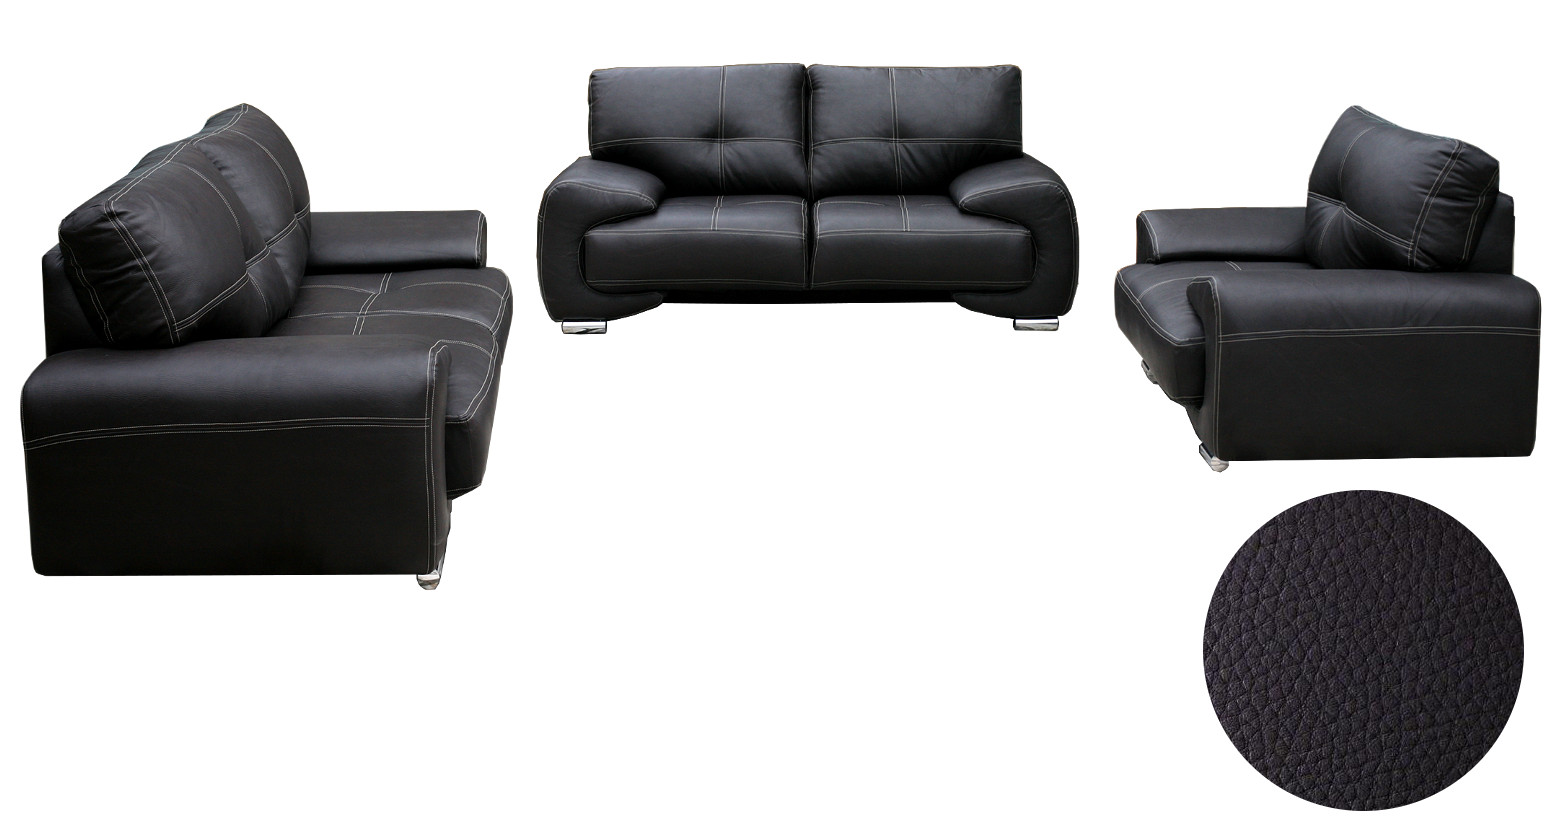 Couch 3er 2er Sessel Wohnlandschaft Sofa Set Couch 3er 2er Sessel 3 2 1